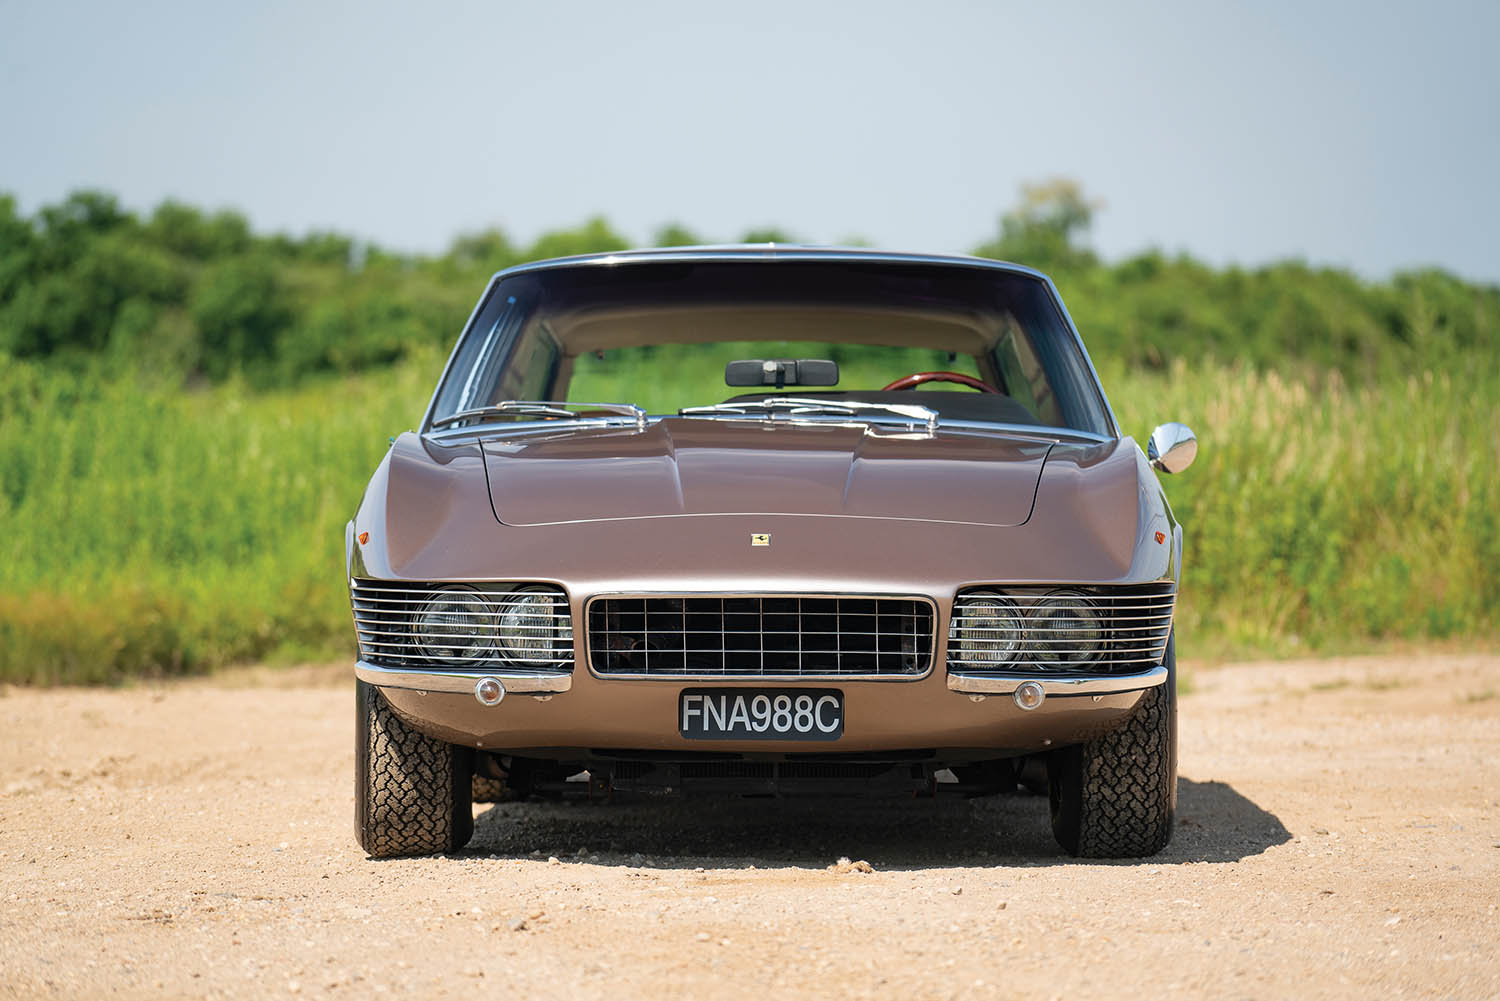 1965-Ferrari-330-GT-2-2-Shooting-Brake-by-Vignale_5.jpg